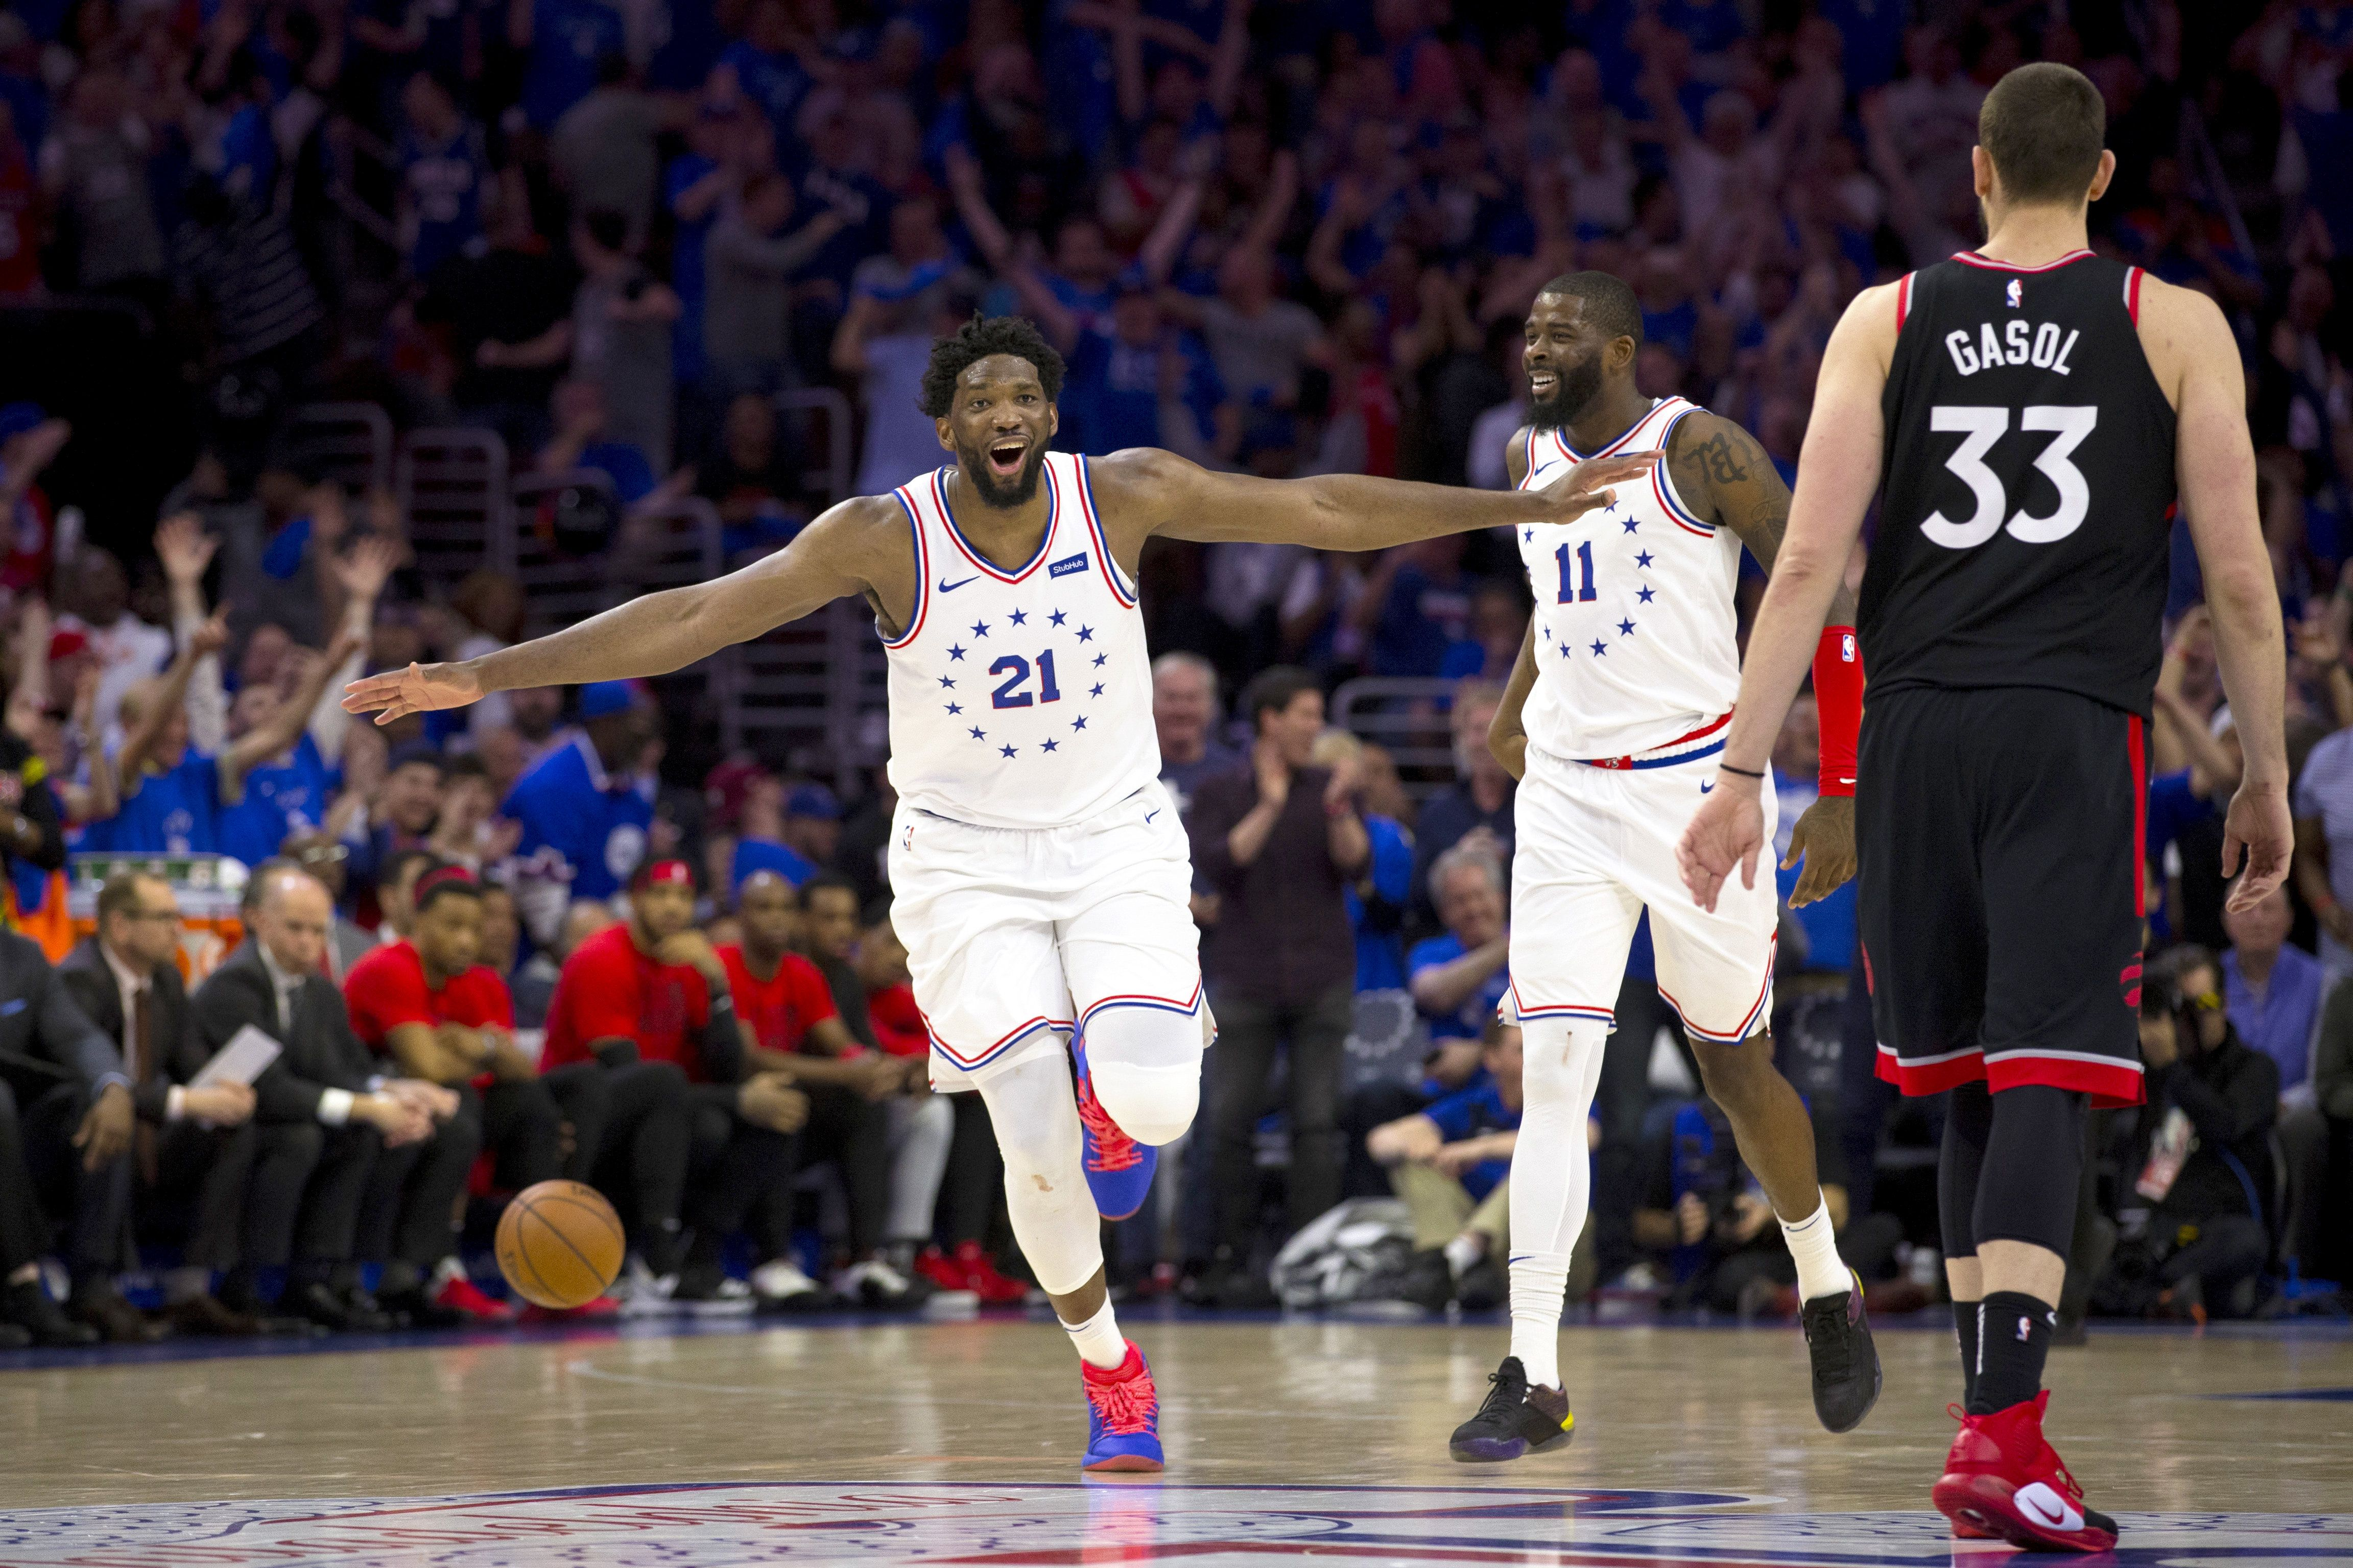 Basketball Human Rights The Met Gala And Nintendo 25 Recent Times Articles Recommended By Teens Human Rights Met Gala Small Forward